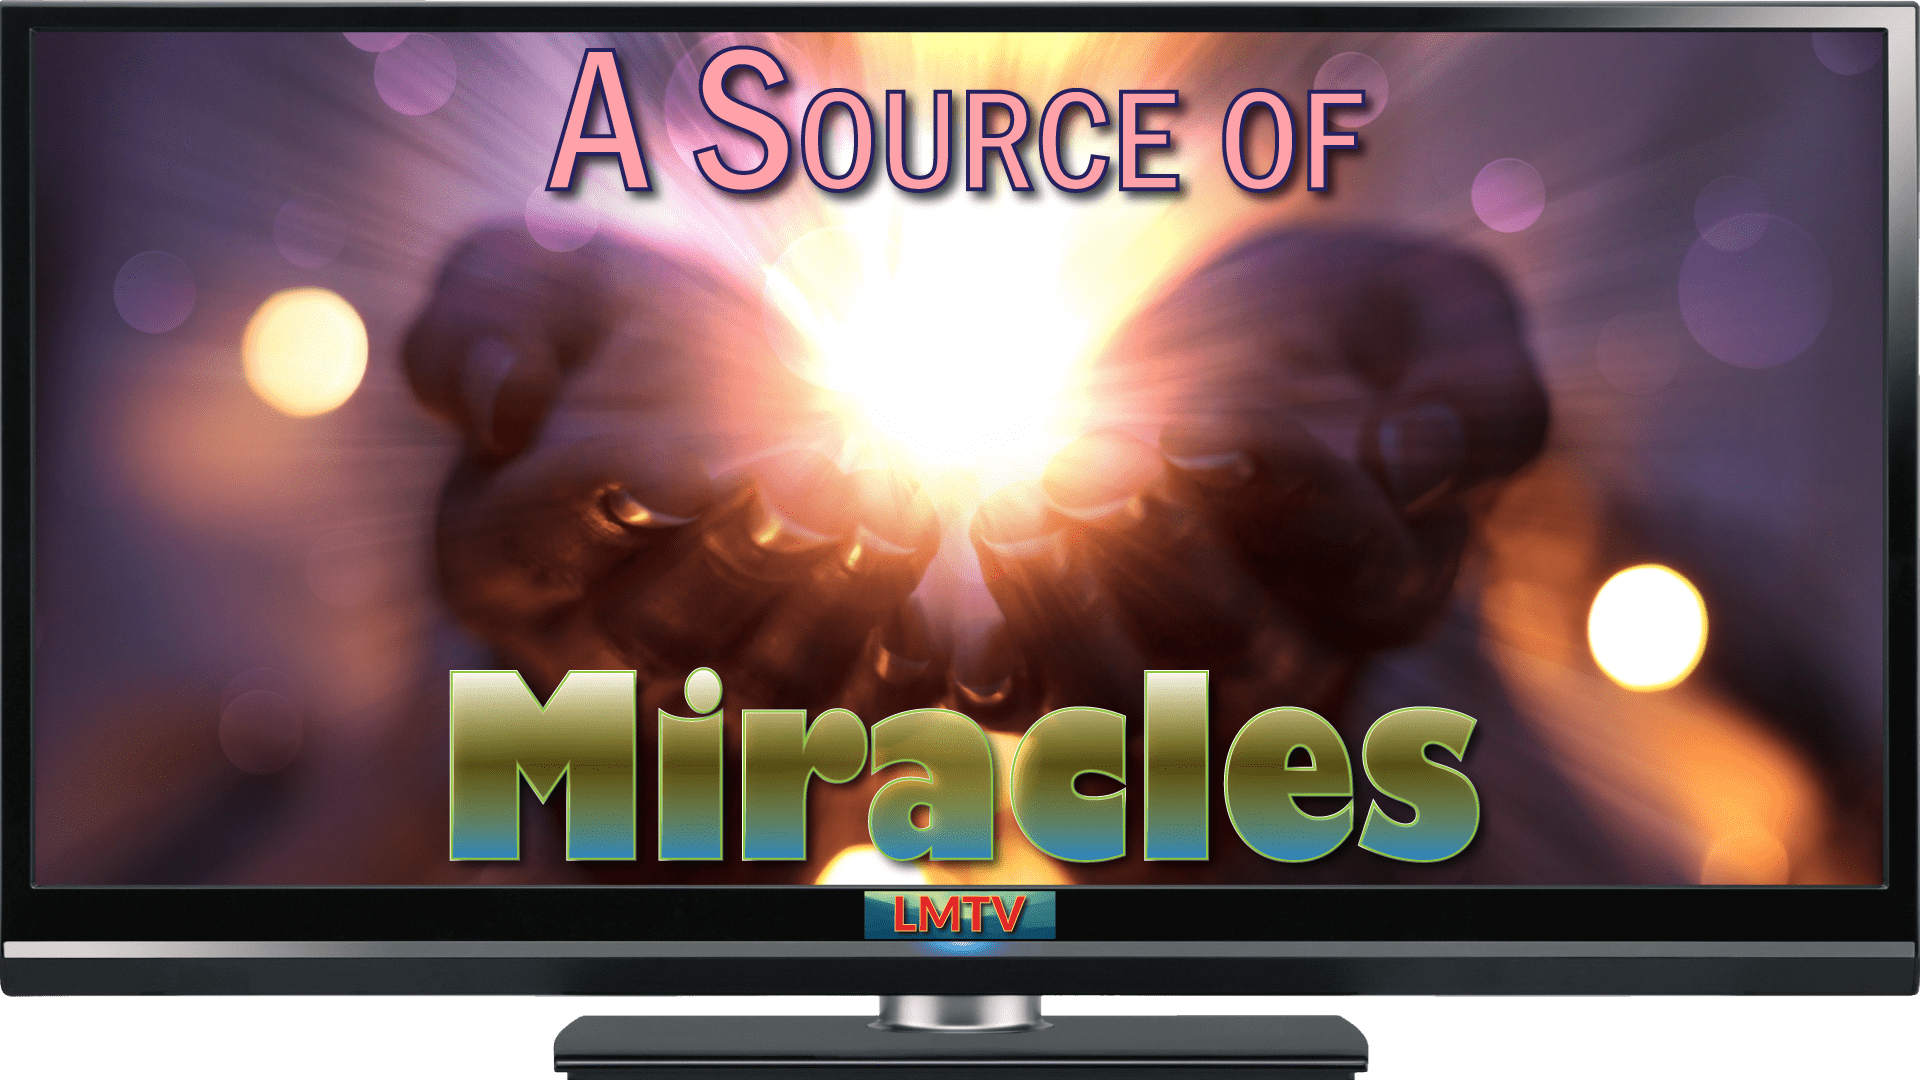 A Source of Miracles